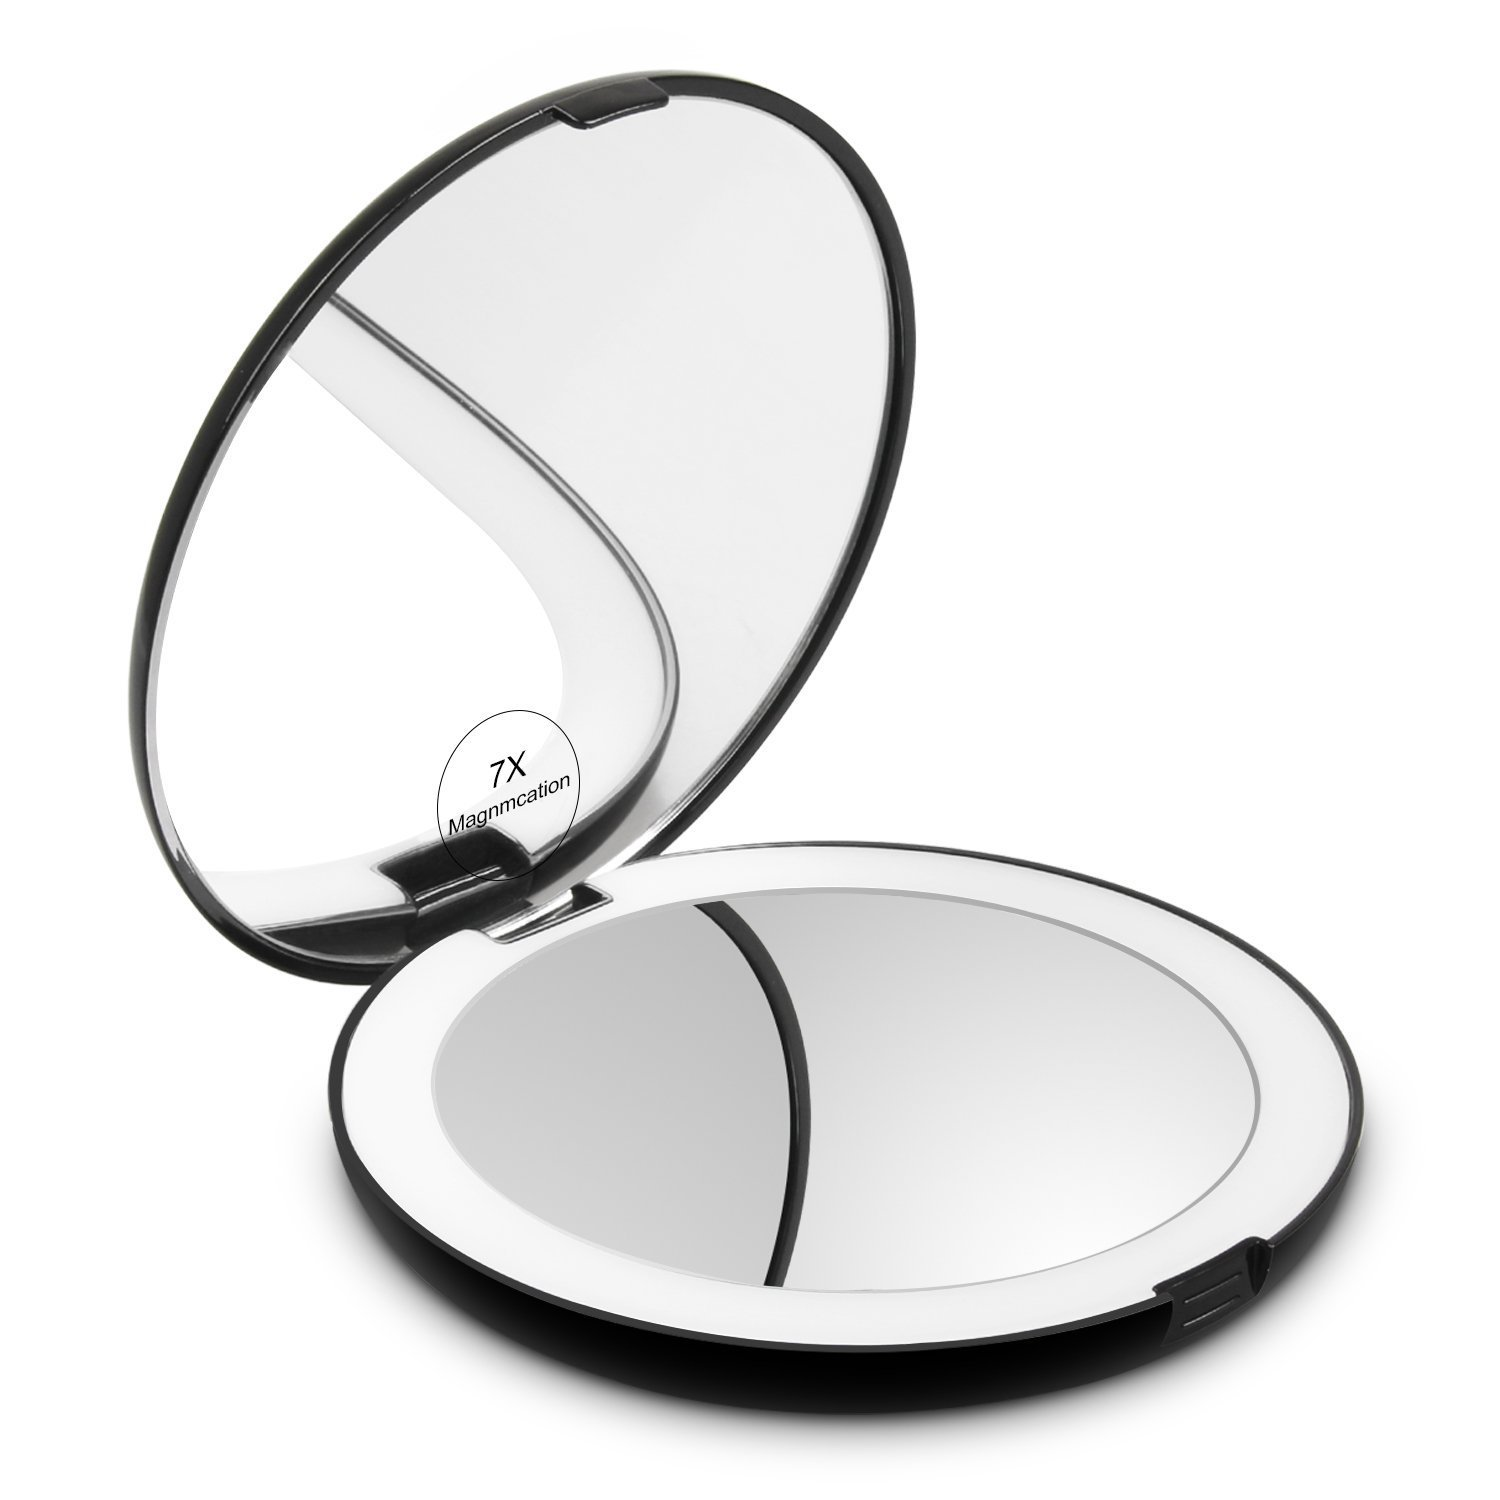 Herwiss Lighted Travel Makeup Mirror, 1x HD 7x Magnifying Folding Hand Held Compact Mirror- Double Sided, Portable, Bright Natural LED Illuminated for Beauty, Cosmetic, Camping and Travel HPRISE